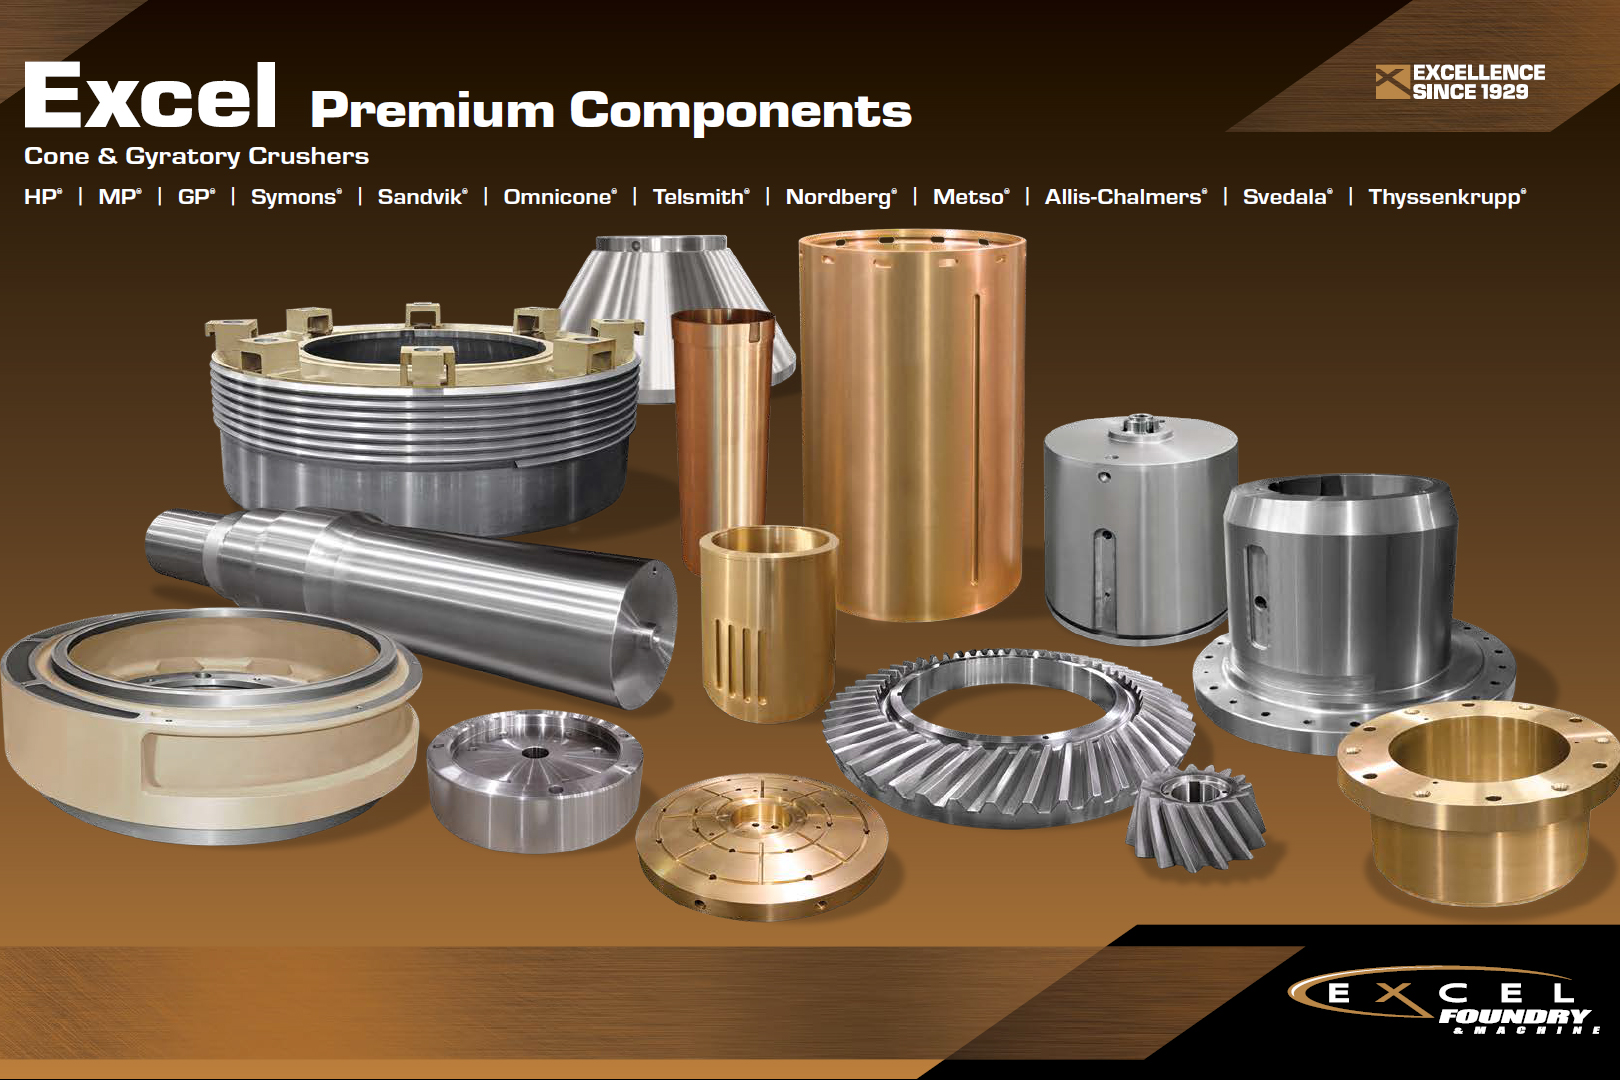 Treea Machinery Products Spares and Wares for Mining and Aggregates - 01